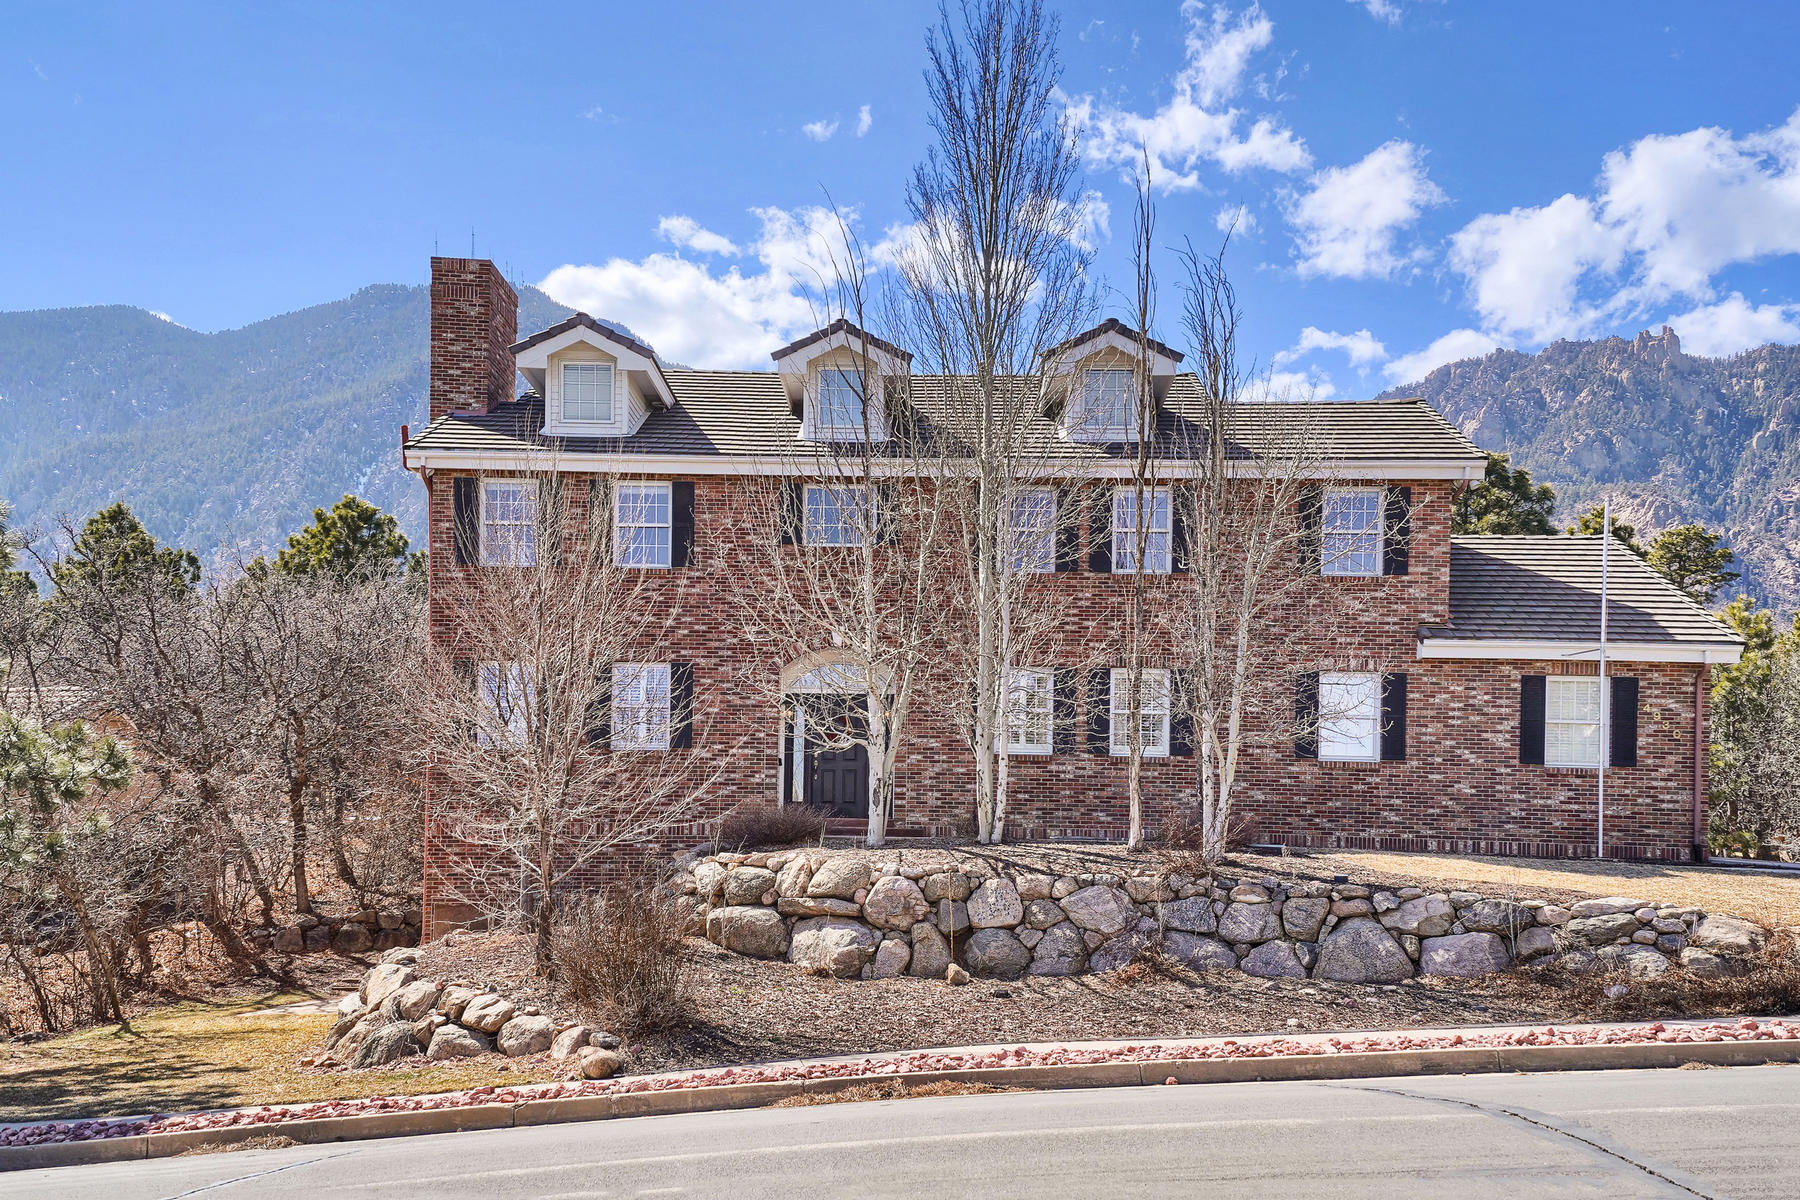 Single Family Homes for Sale at BEAUTIFUL ALL BRICK 2 STORY 4930 Langdale Way Colorado Springs, Colorado 80906 United States